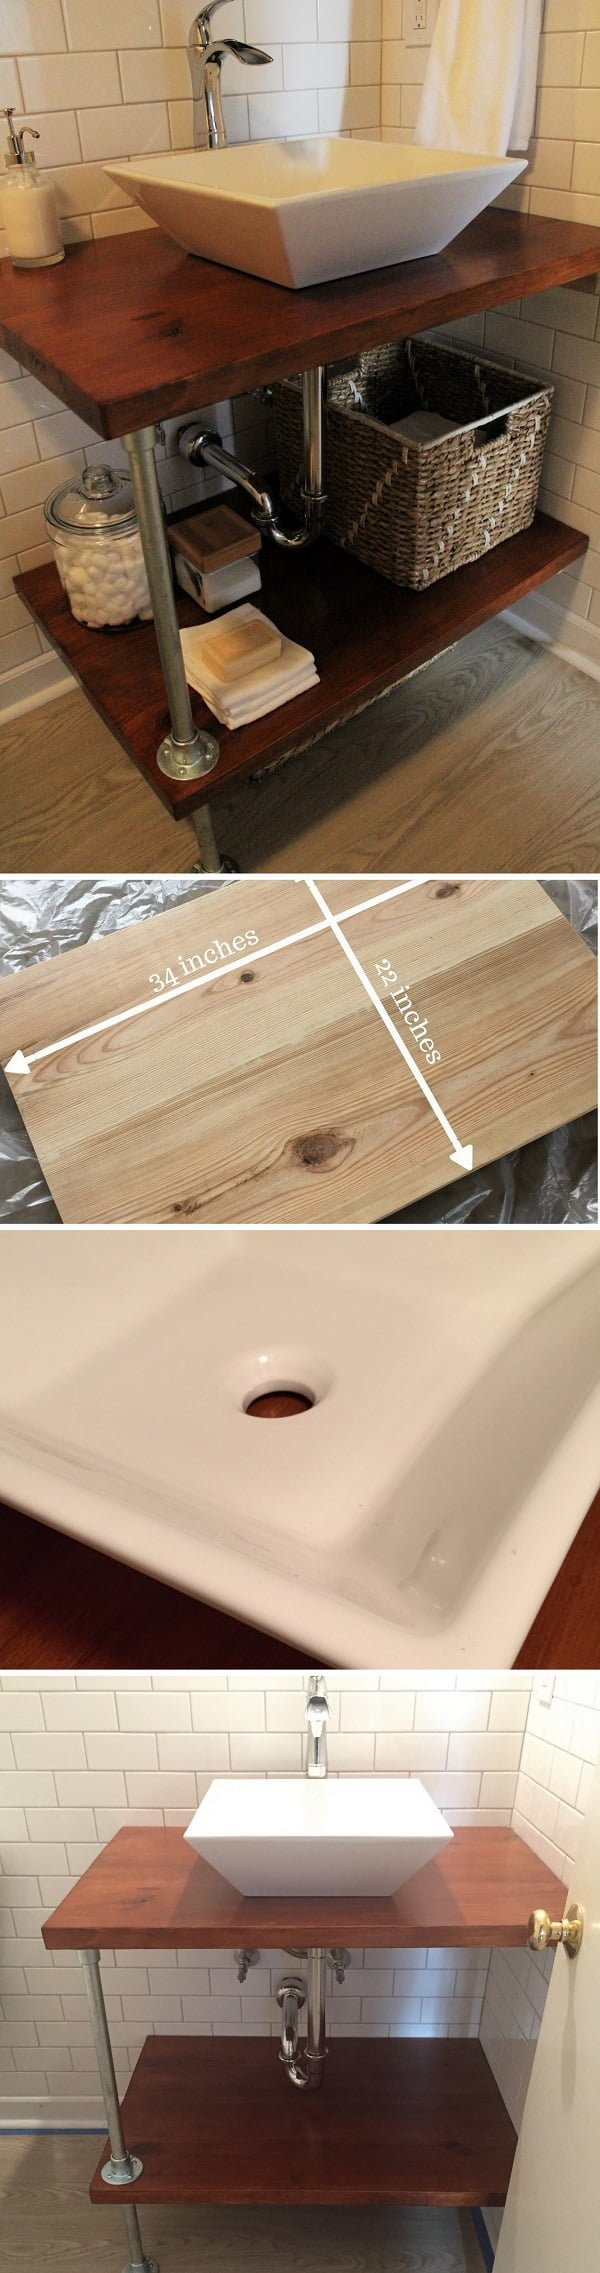 How to make a #DIY bathroom vanity shelves